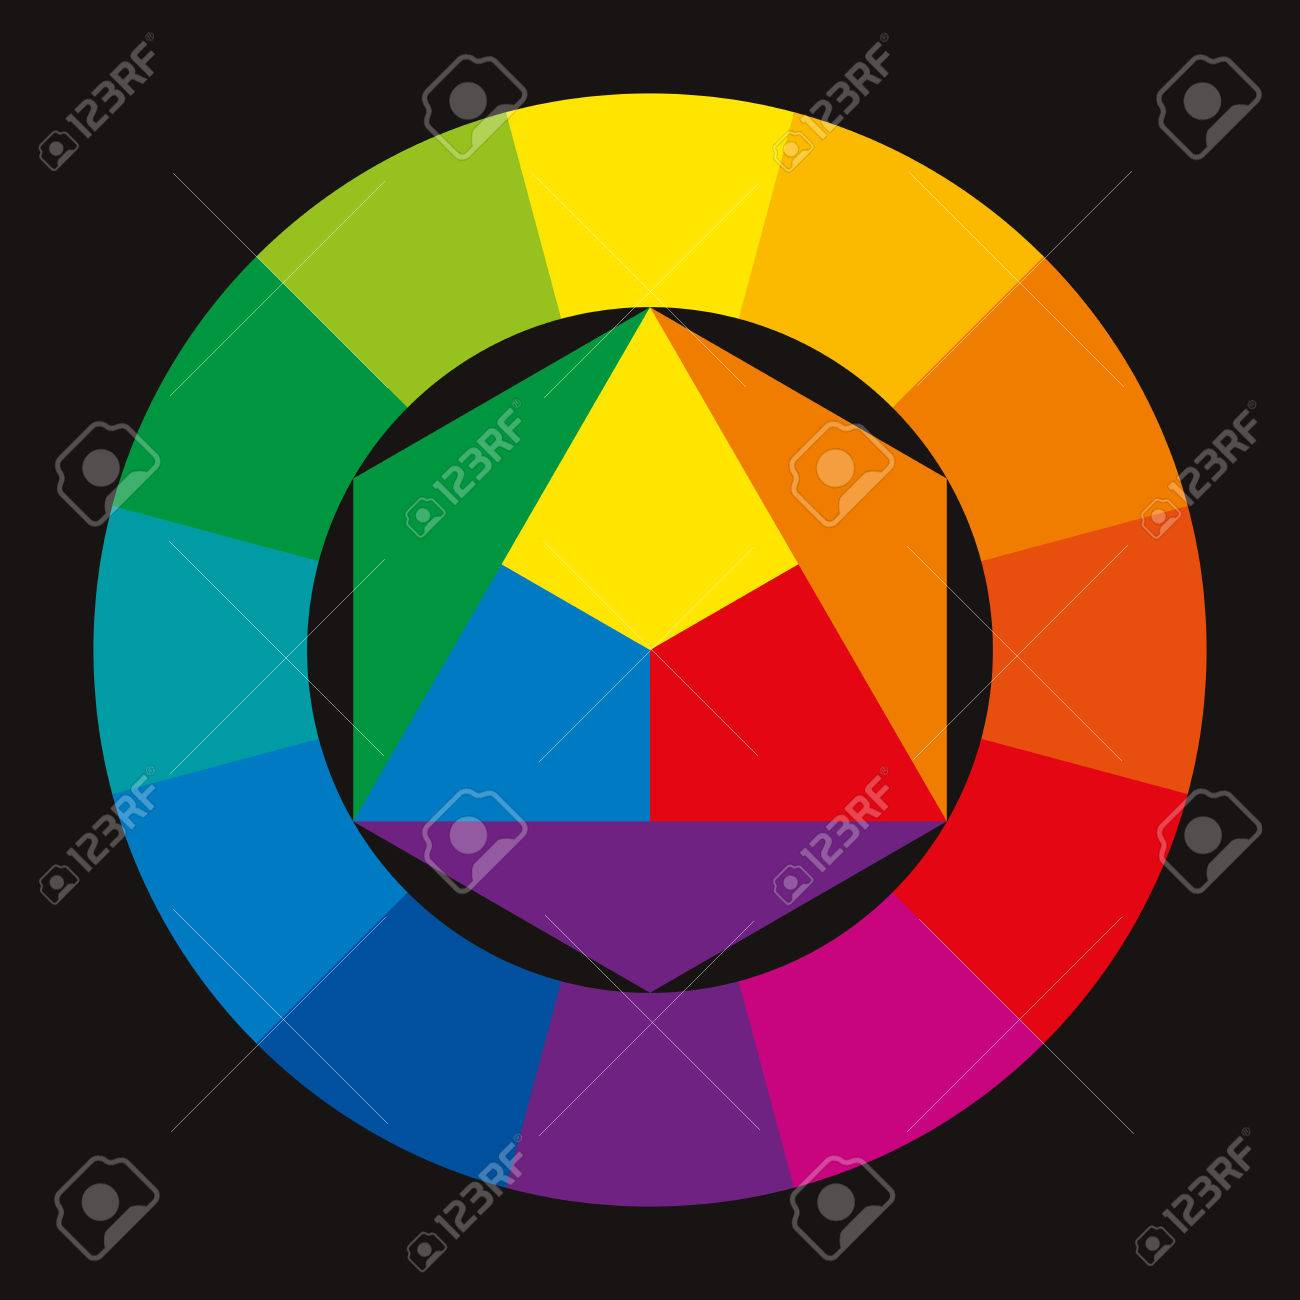 Color Wheel On Black Background Showing The Complementary Colors